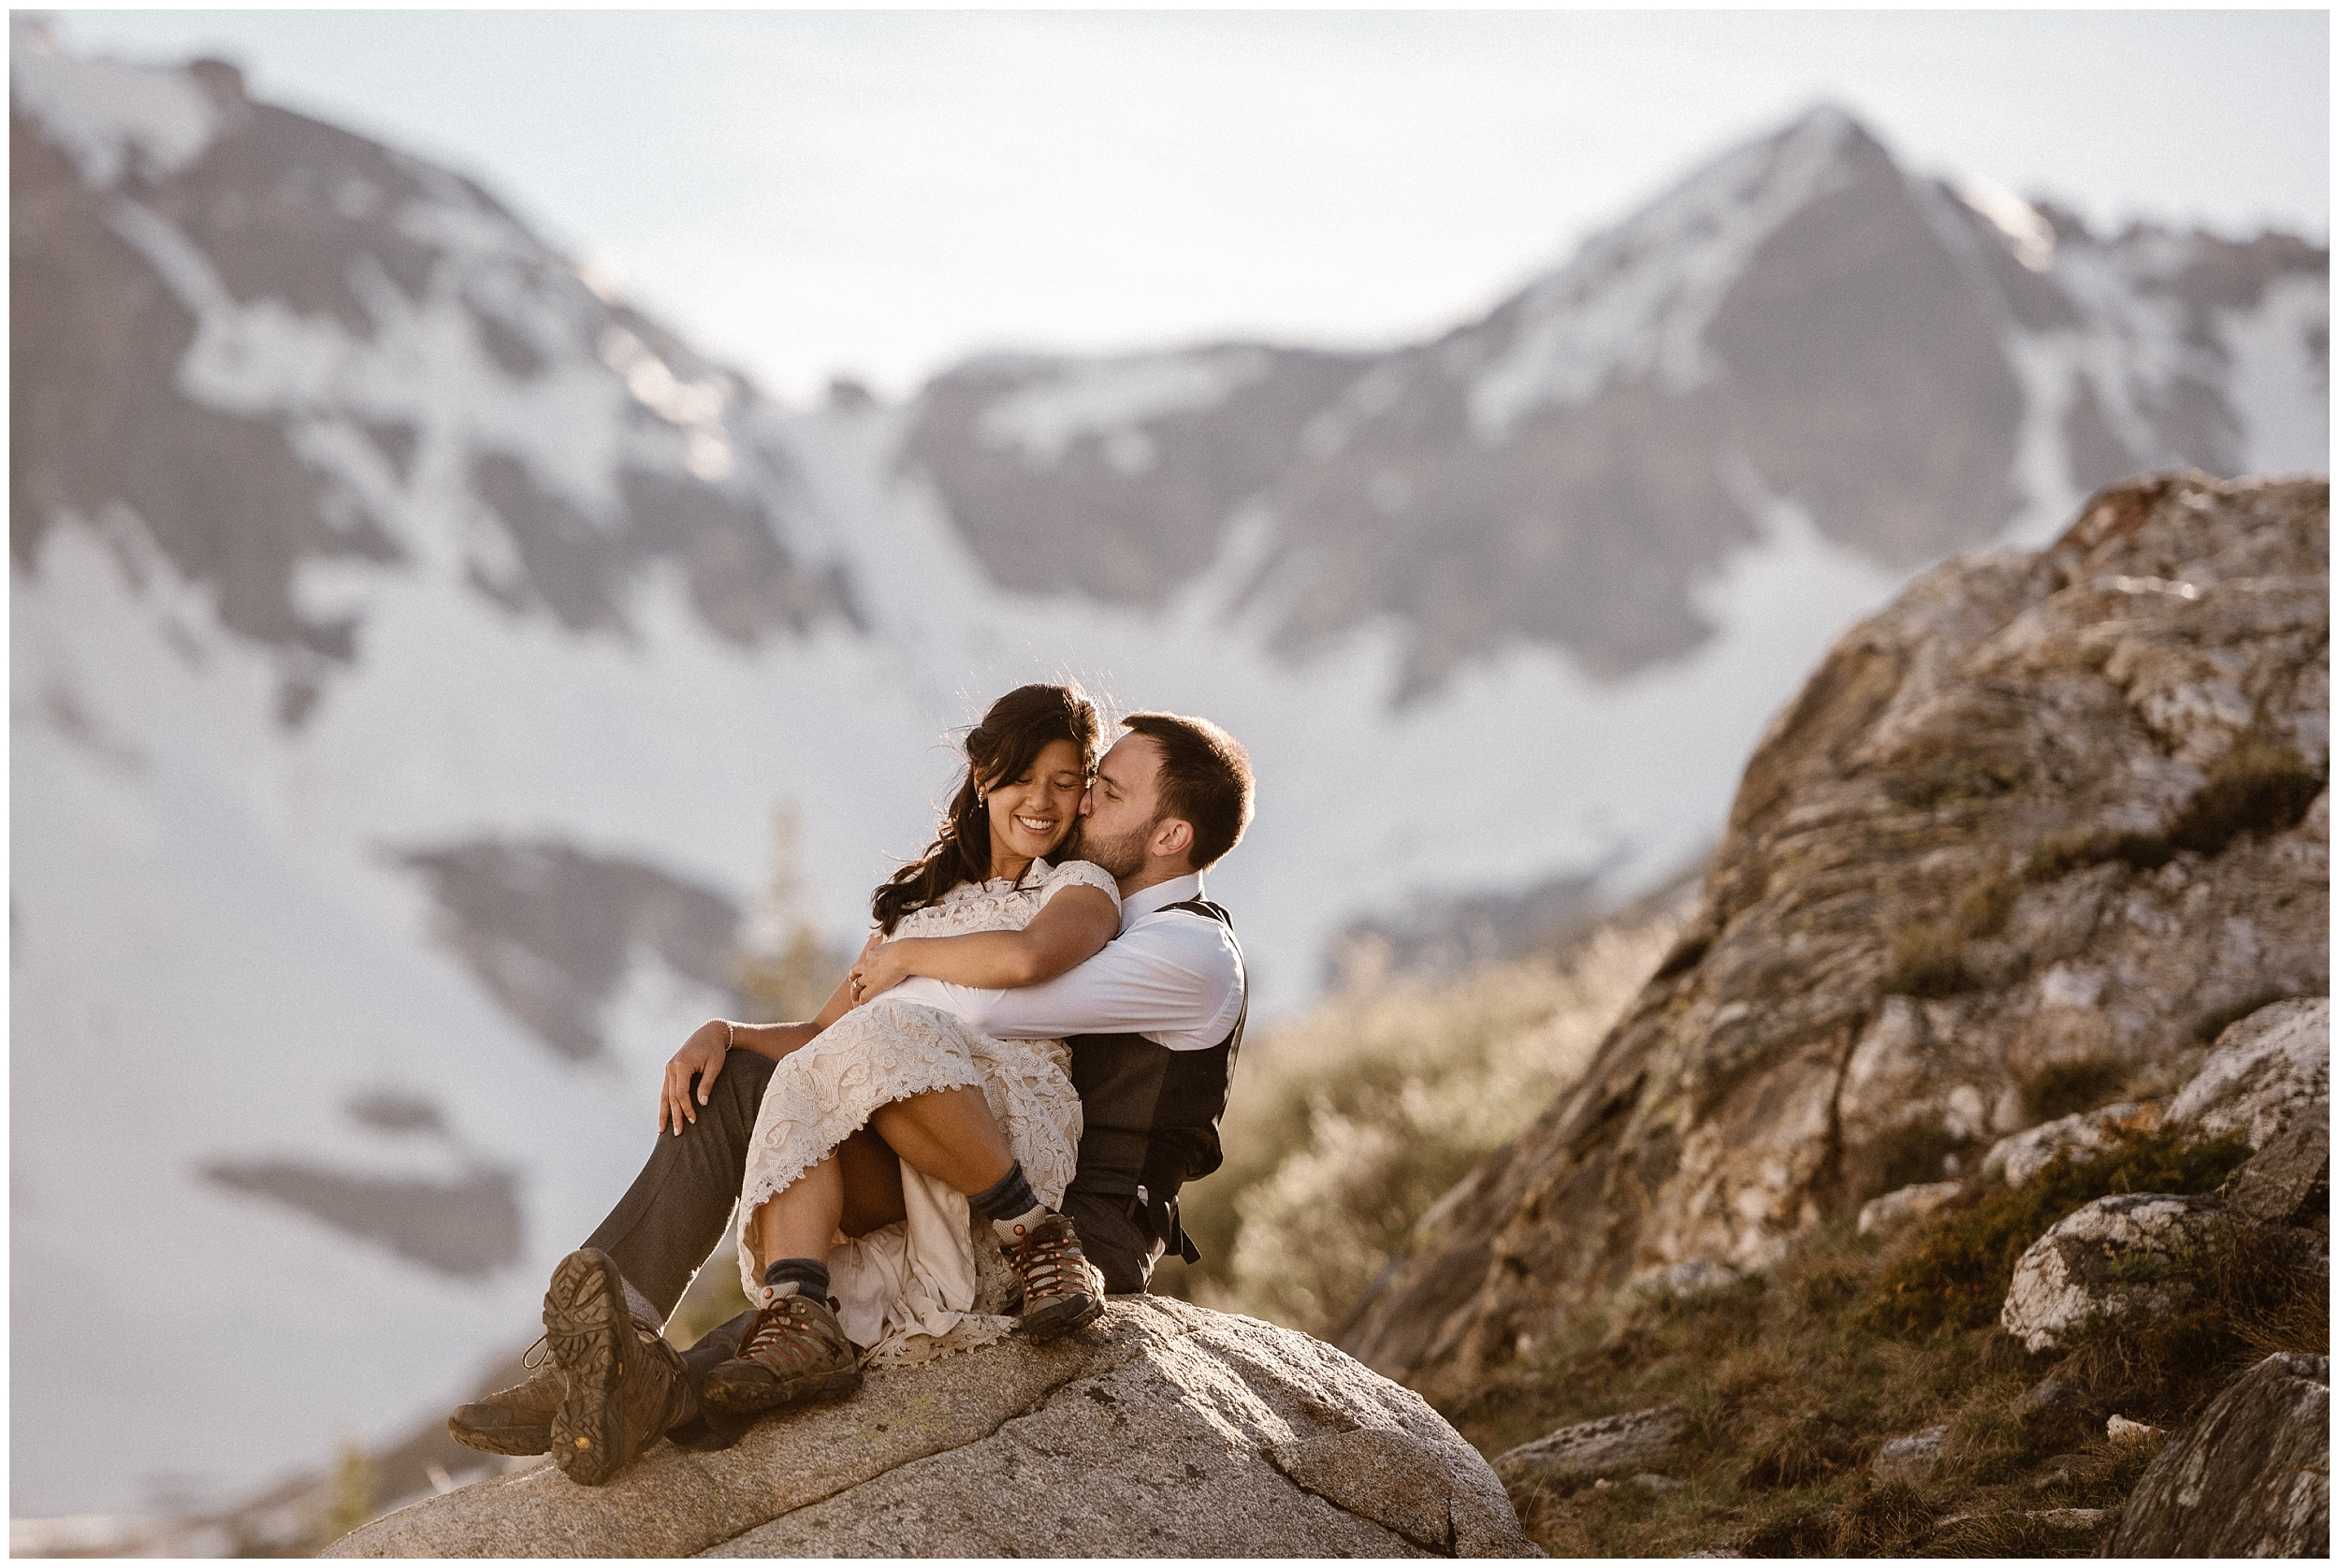 A bride and groom hold each other tight as they sit on a rock right after their elopement ceremony. This destination elopement was the small simple wedding they always dreamed of! Why elope? Because you can create a day that means the most to you!